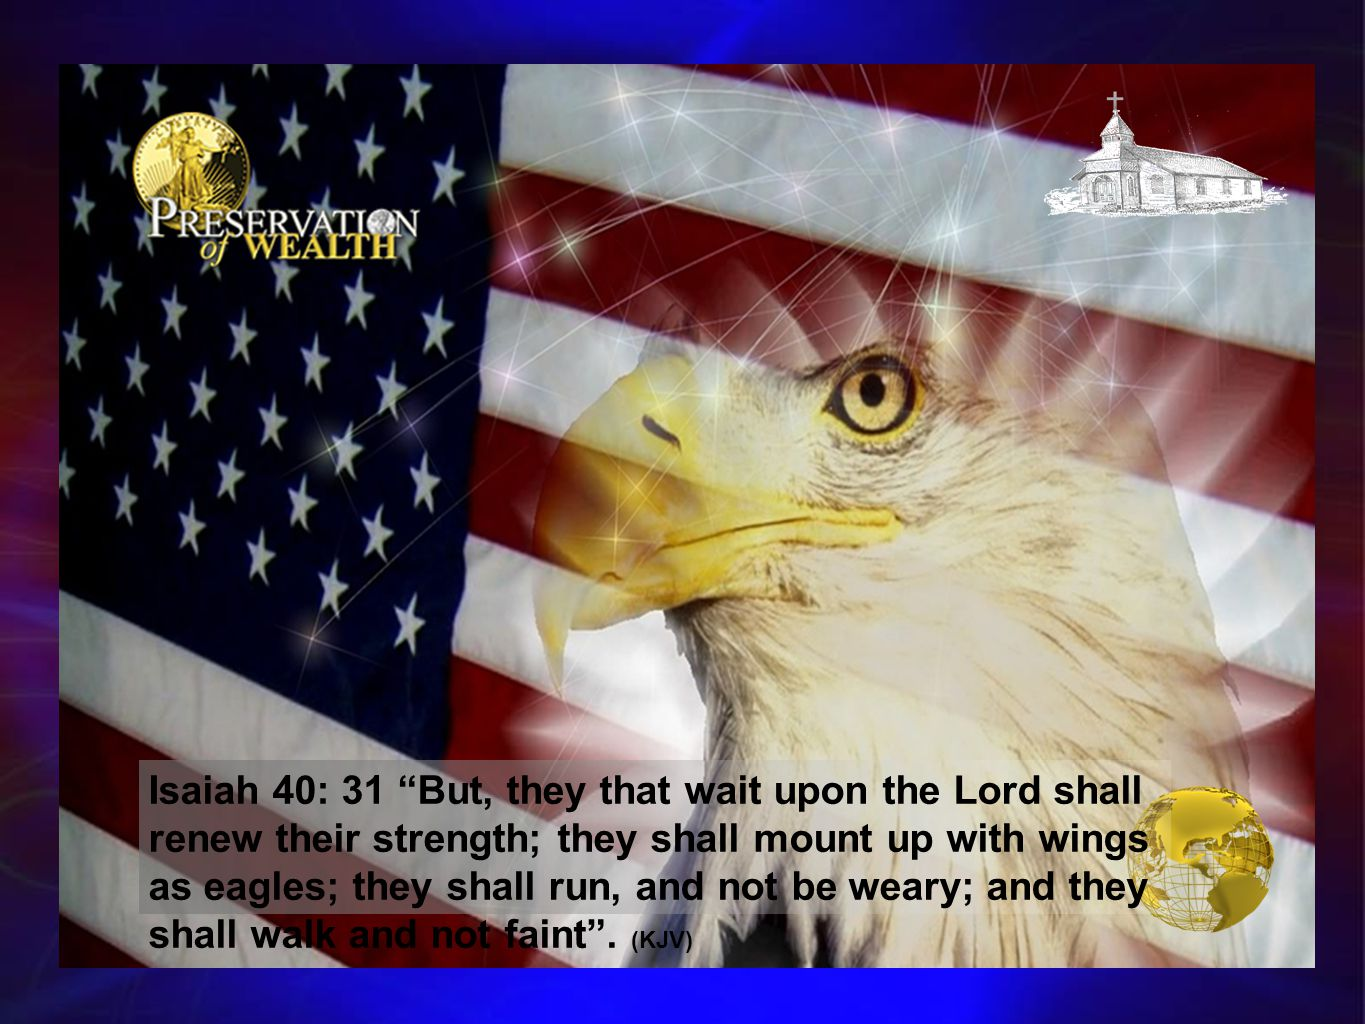 Isaiah 40: 31 But, they that wait upon the Lord shall renew their strength; they shall mount up with wings as eagles; they shall run, and not be weary; and they shall walk and not faint .